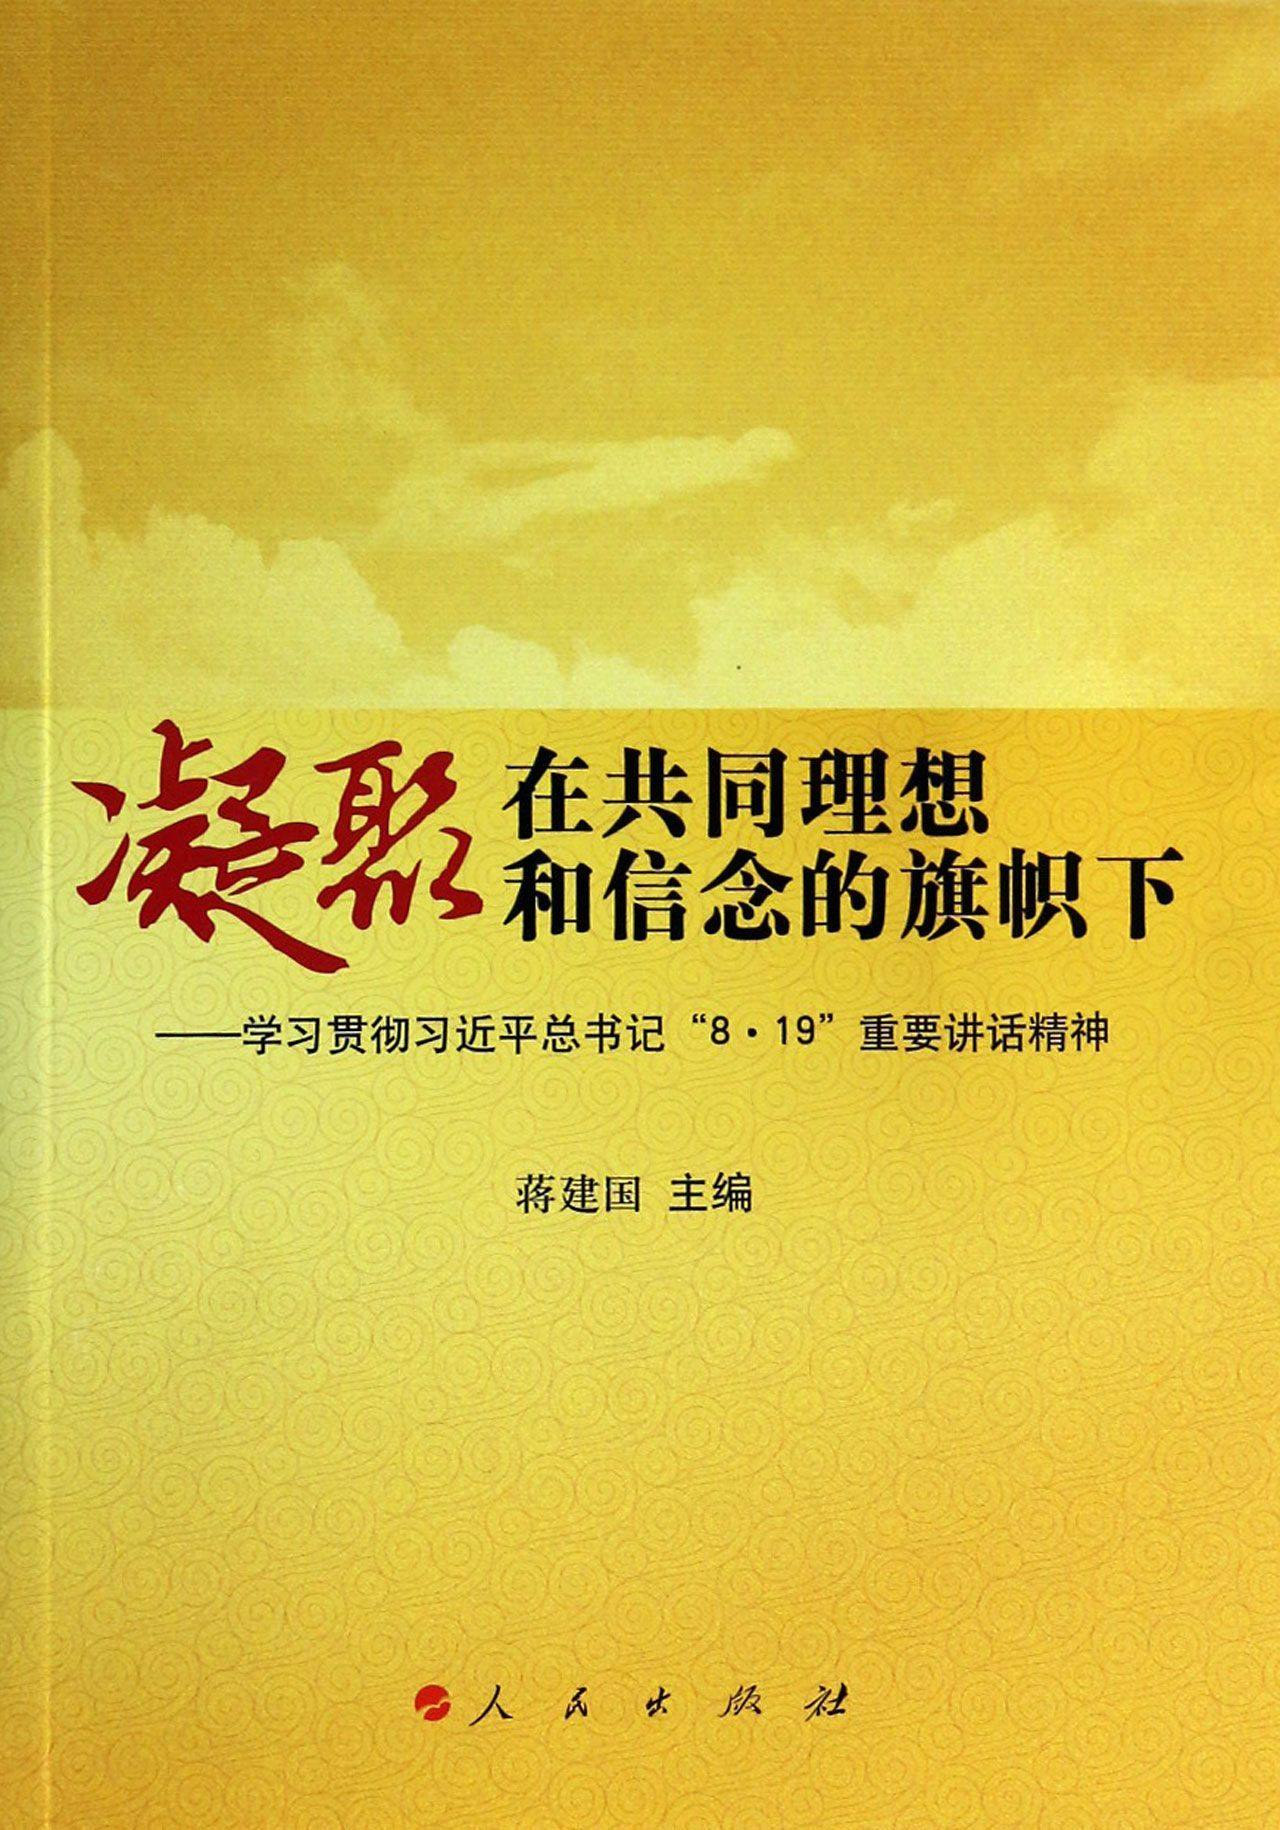 Unite under the Banner of Common Ideals and Beliefs – Learning and Implementing the Spirit of General Secretary Xi Jinpings Important Speech on August 19凝聚在共同理想和信念的旗帜下--学习贯彻习近平总书记8·19重要讲话精神 Jiang Jian Guo蒋建国